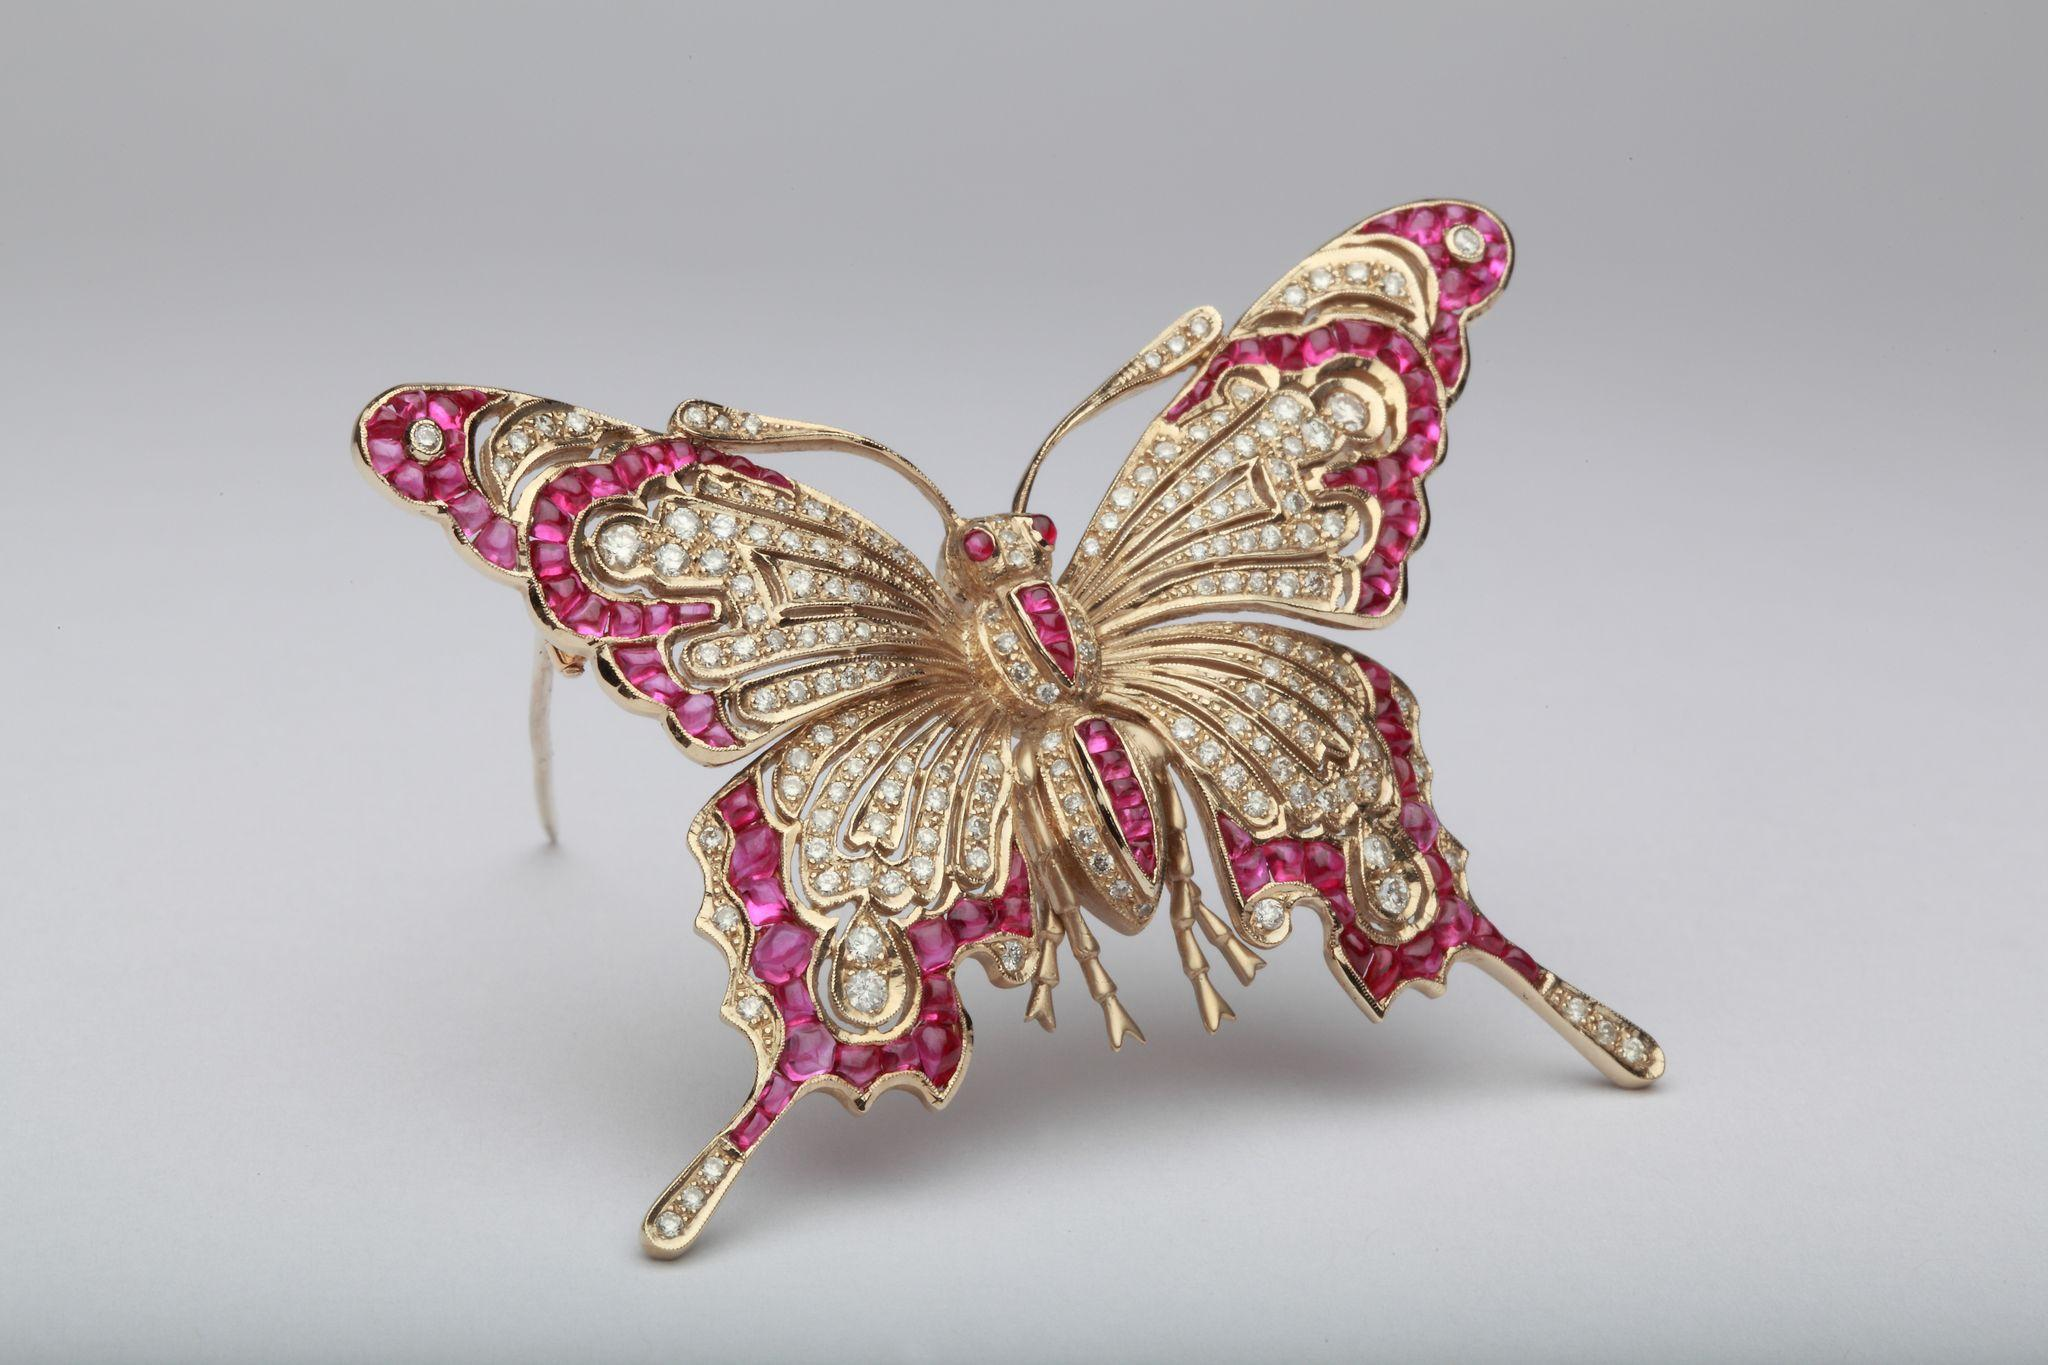 Ruby And Diamond Gold Butterfly Brooch From Art1900 On Rubylux